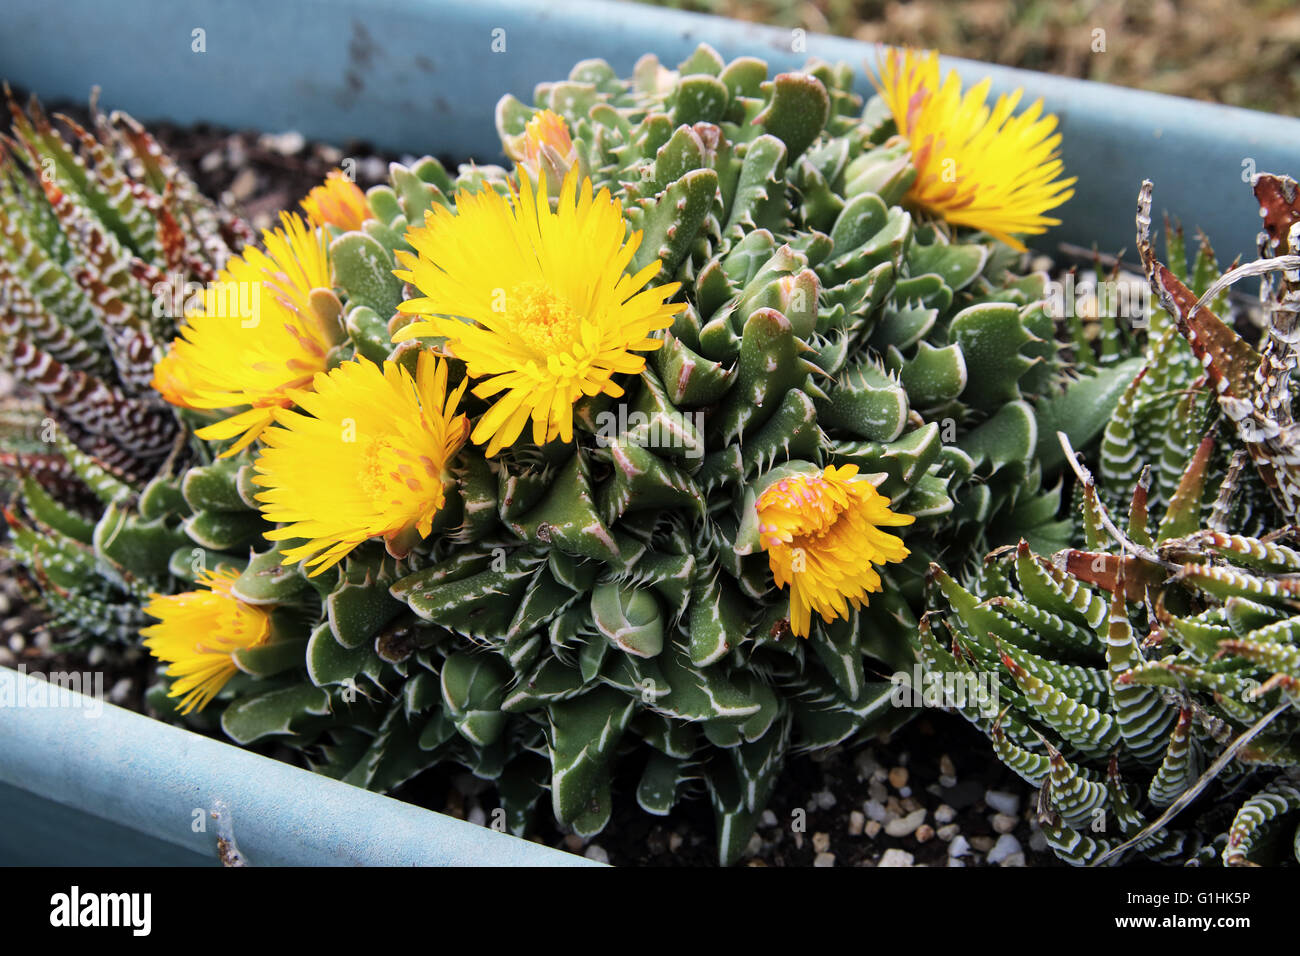 Close up of tiger jaws succulent plant or known as faucaria tigrina close up of tiger jaws succulent plant or known as faucaria tigrina with yellow flowers mightylinksfo